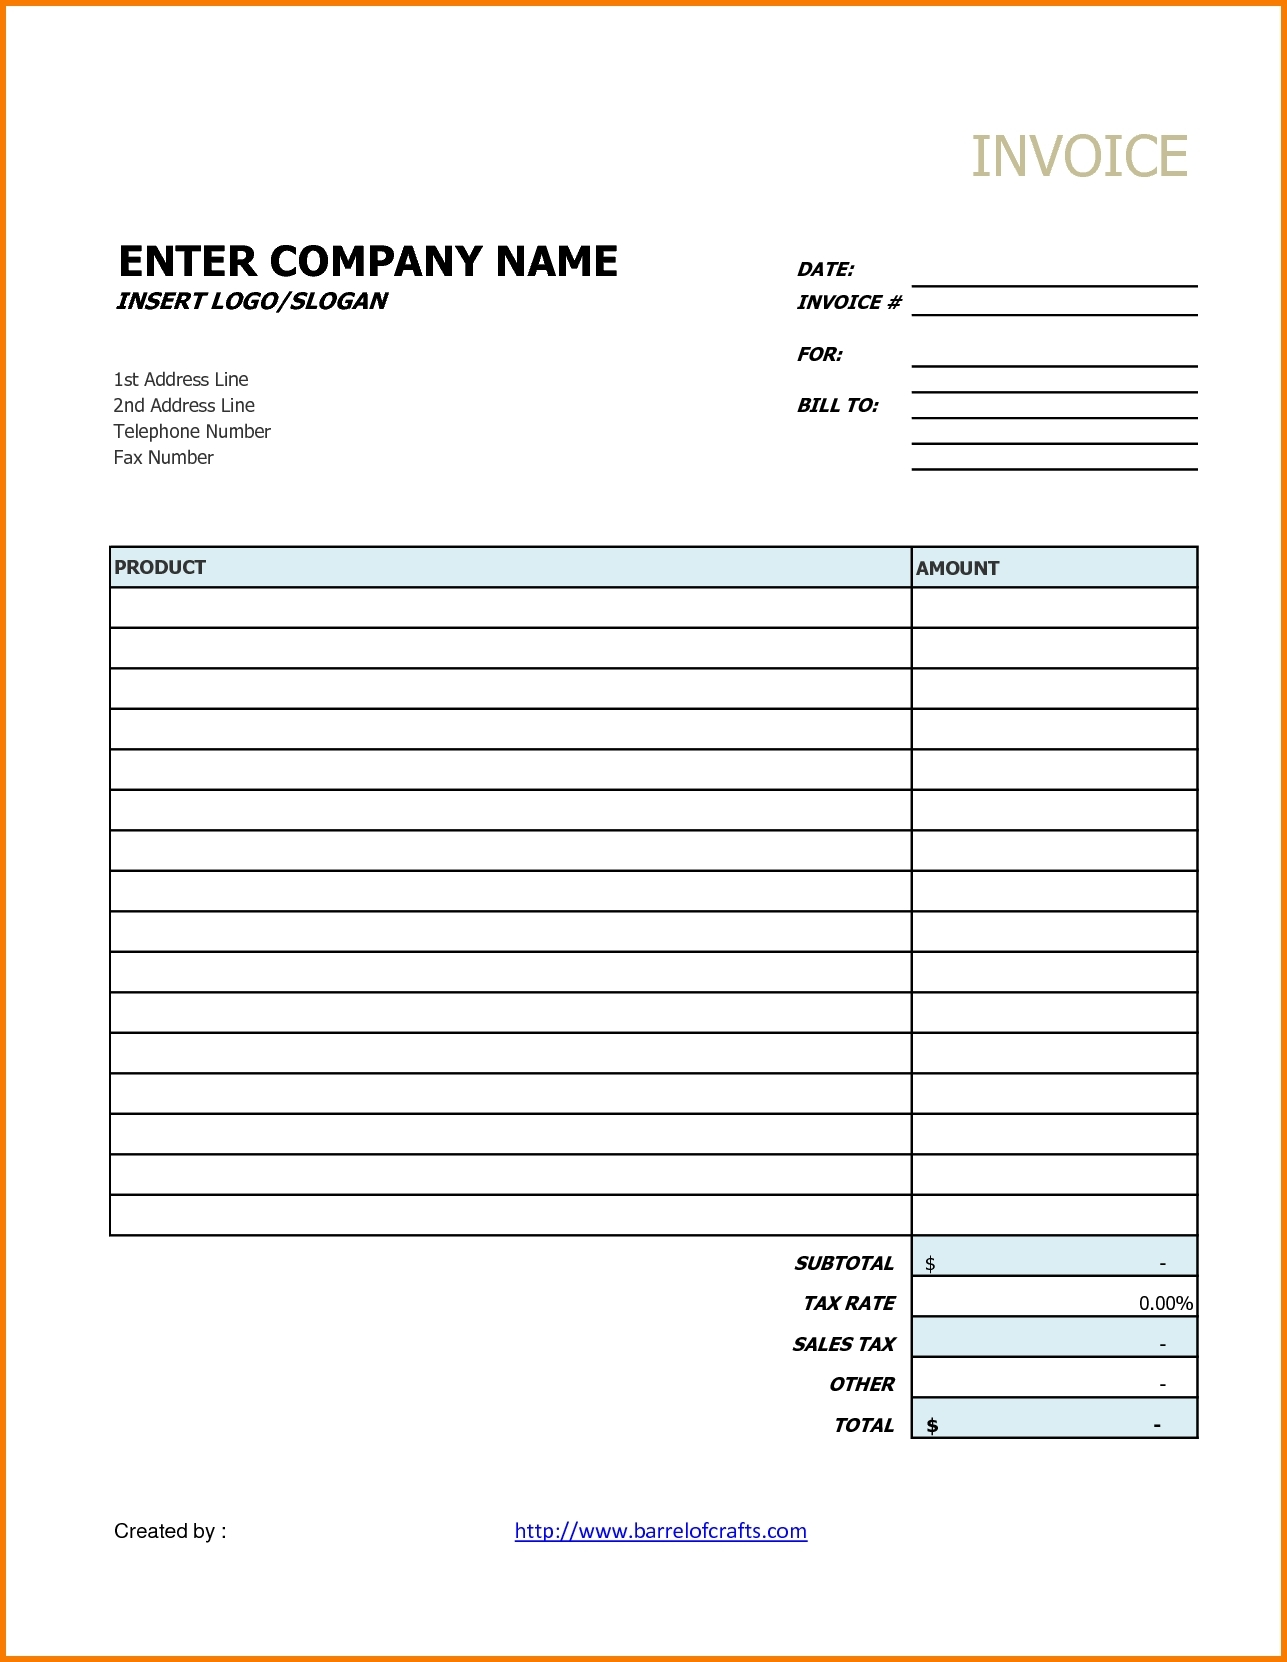 google docs invoice templates invoice template ideas google templates invoice